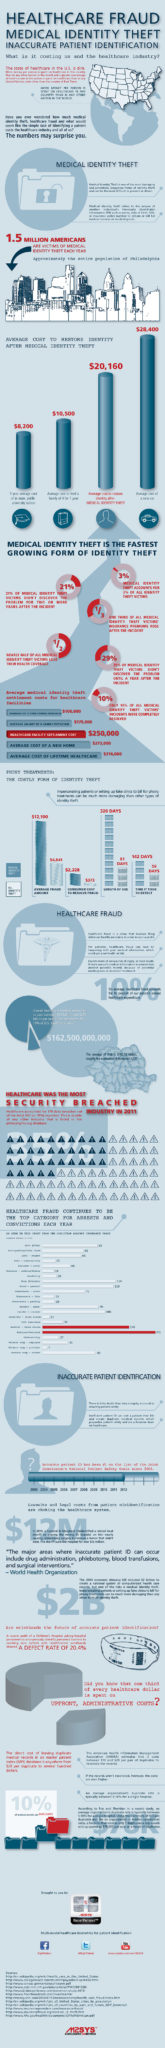 Infographic on medical identity theft healthcare fraud and patient misidentification